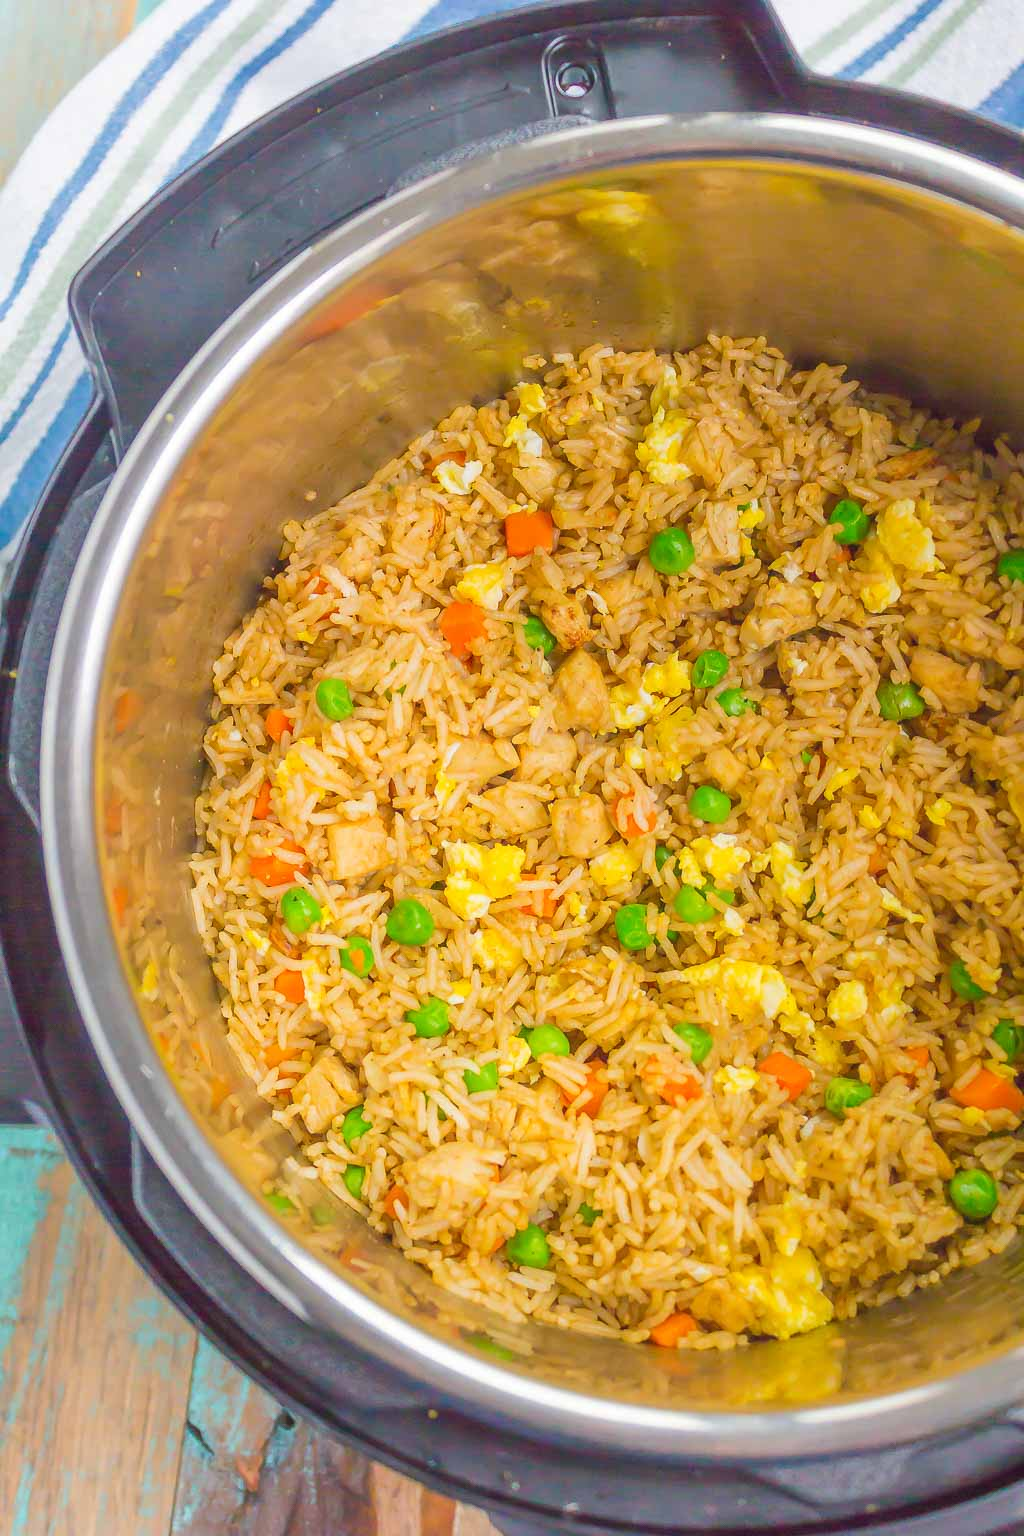 Instant Pot Chicken Fried Rice is a simple, one pot recipe that's ready in no time. With just a few ingredients, this dish is perfect for meal prepping, lunch, or dinner!